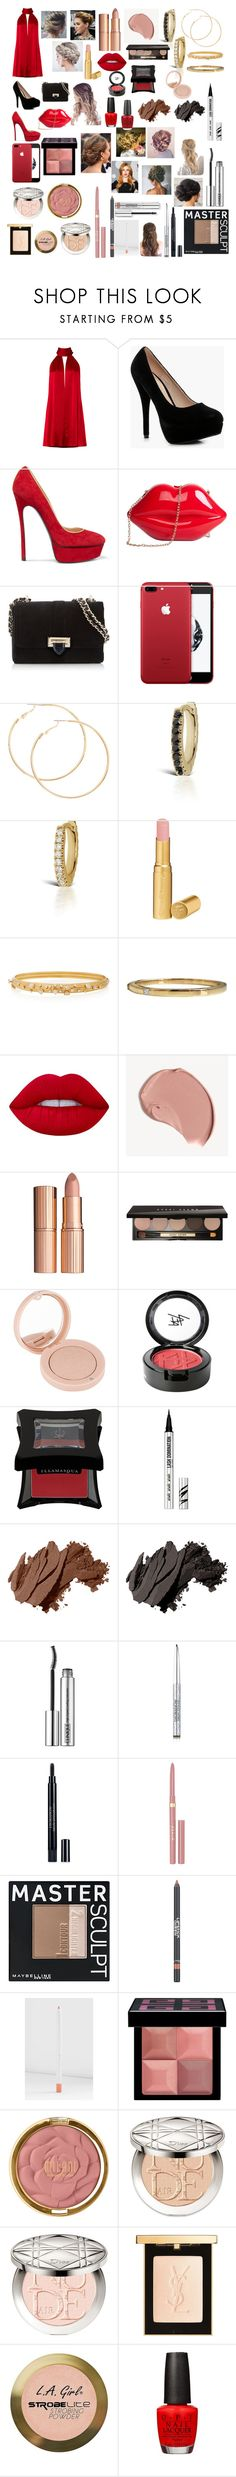 """Red Dress"" by mikahelaine ❤ liked on Polyvore featuring Galvan, Boohoo, Casadei, Aspinal of London, Maria Tash, Too Faced Cosmetics, Hueb, Cartier, Lime Crime and Burberry"